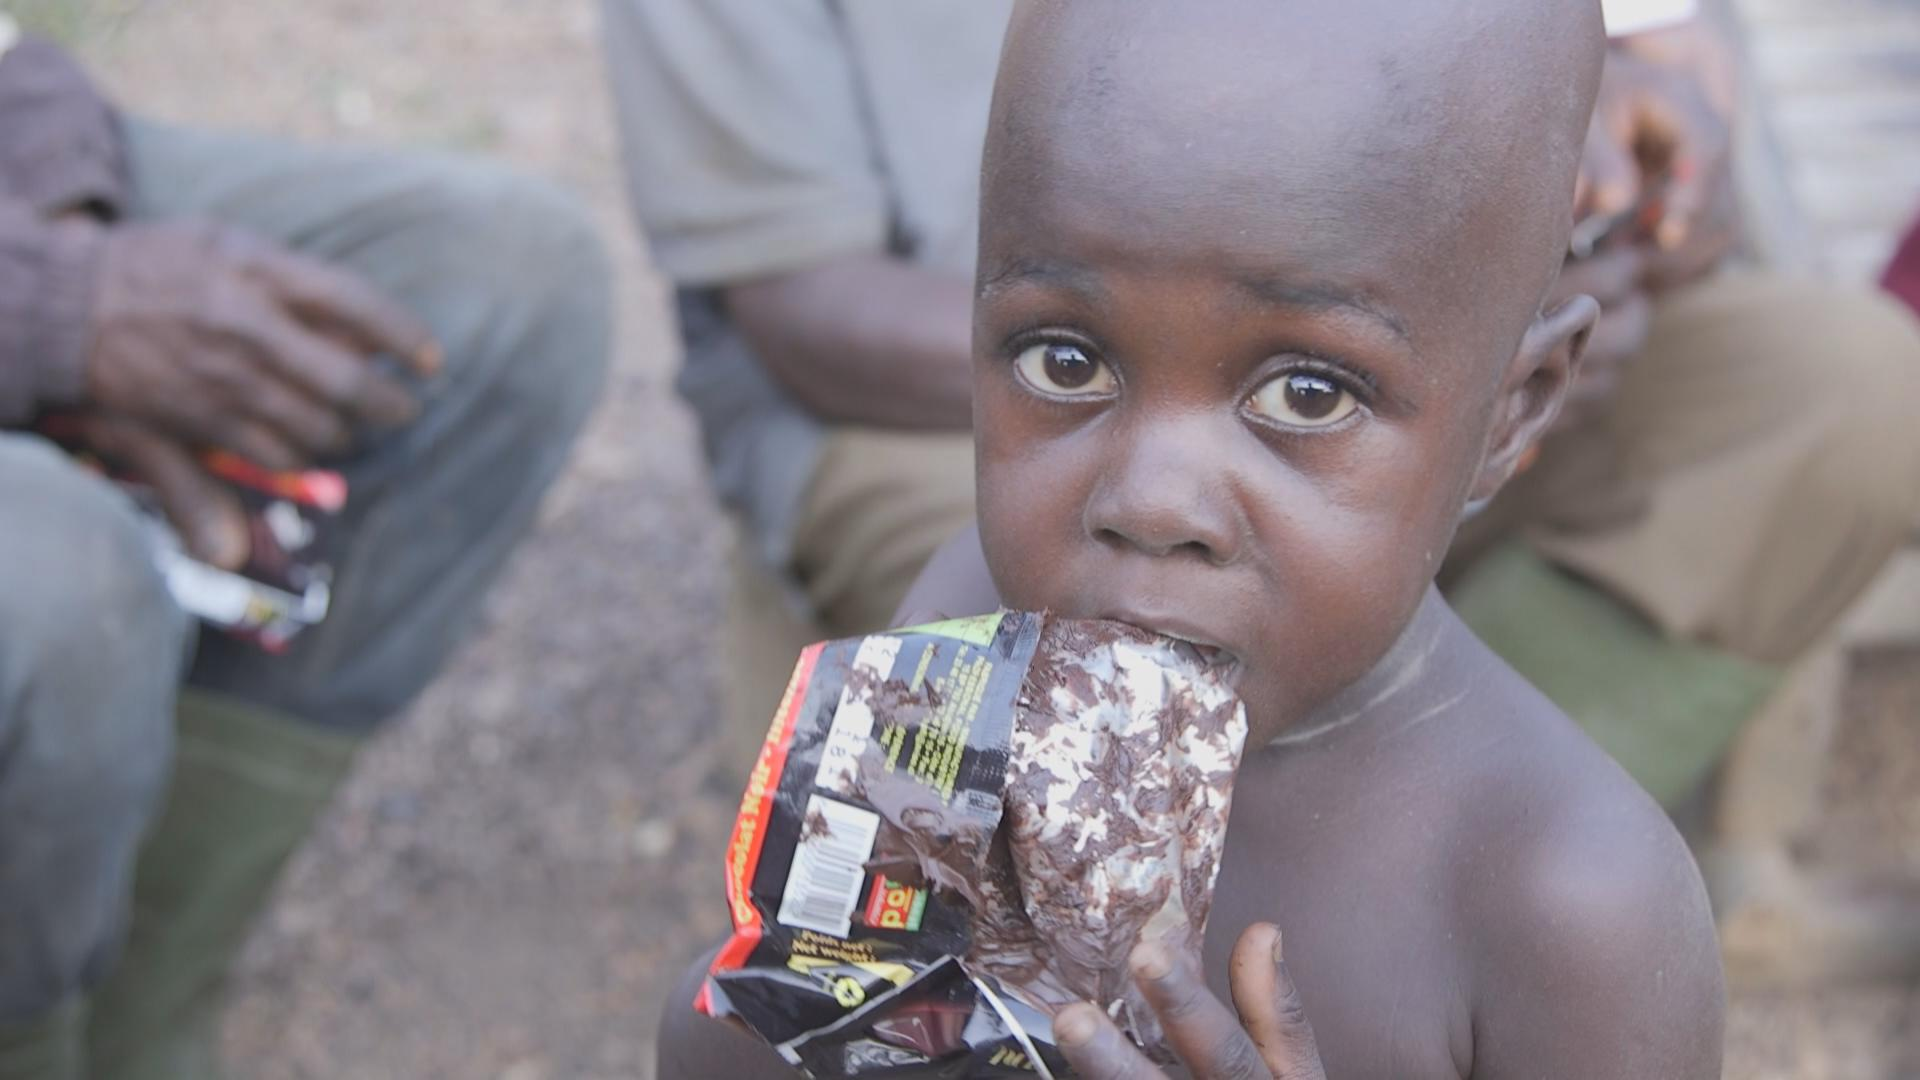 One of the cacao's farmers child enjoying chocolate. Most cacao farmers in Cote d'Ivoire have never tasted chocolate.